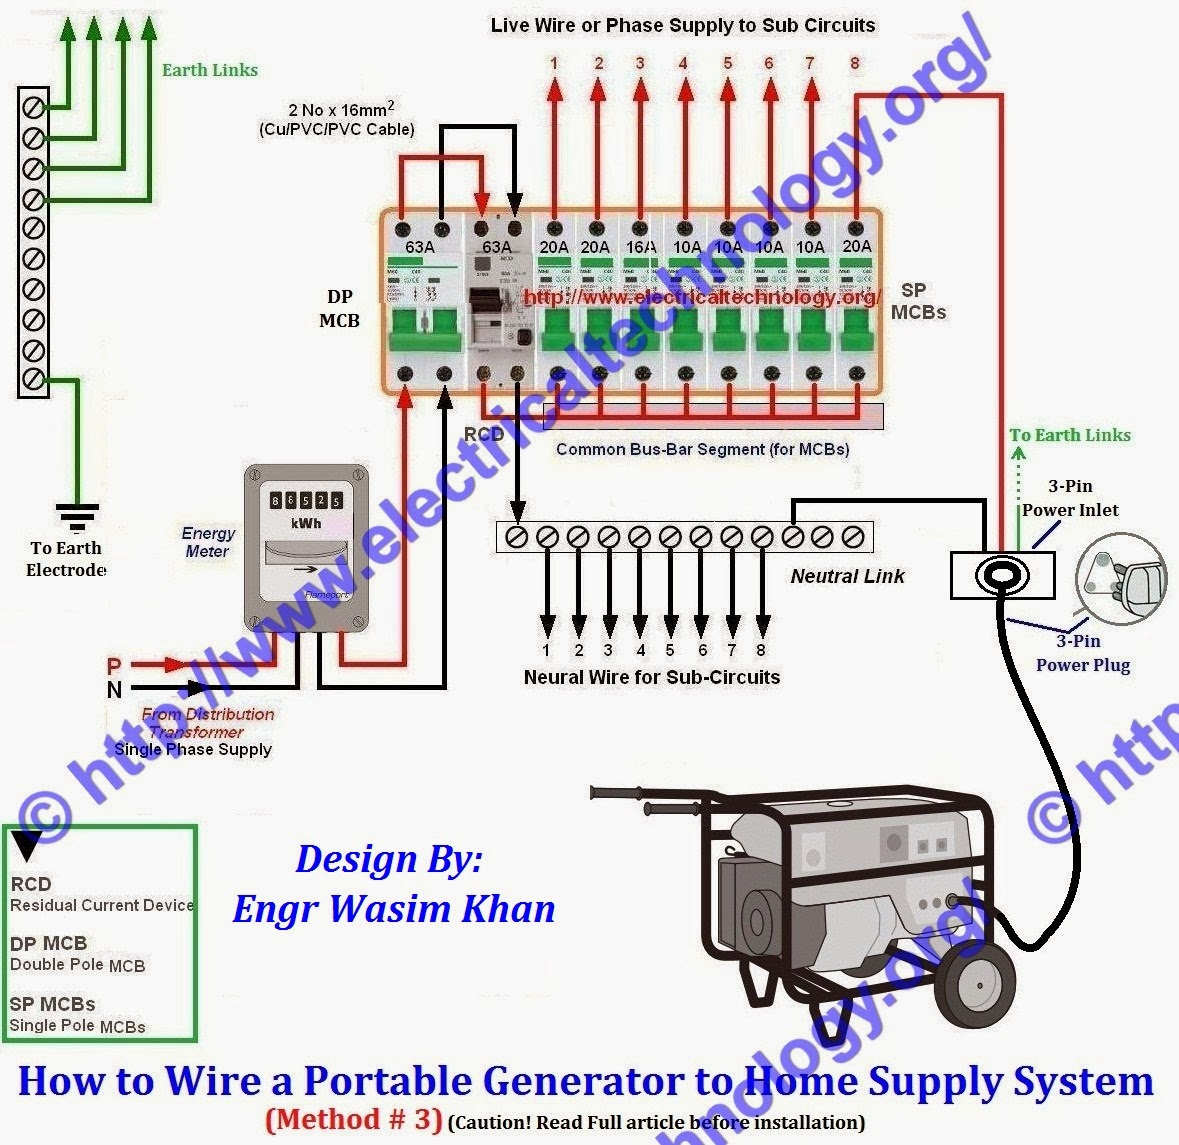 house wiring 220 outlet the wiring diagram collection wiring 220 volt outlet portable generator pictures house wiring